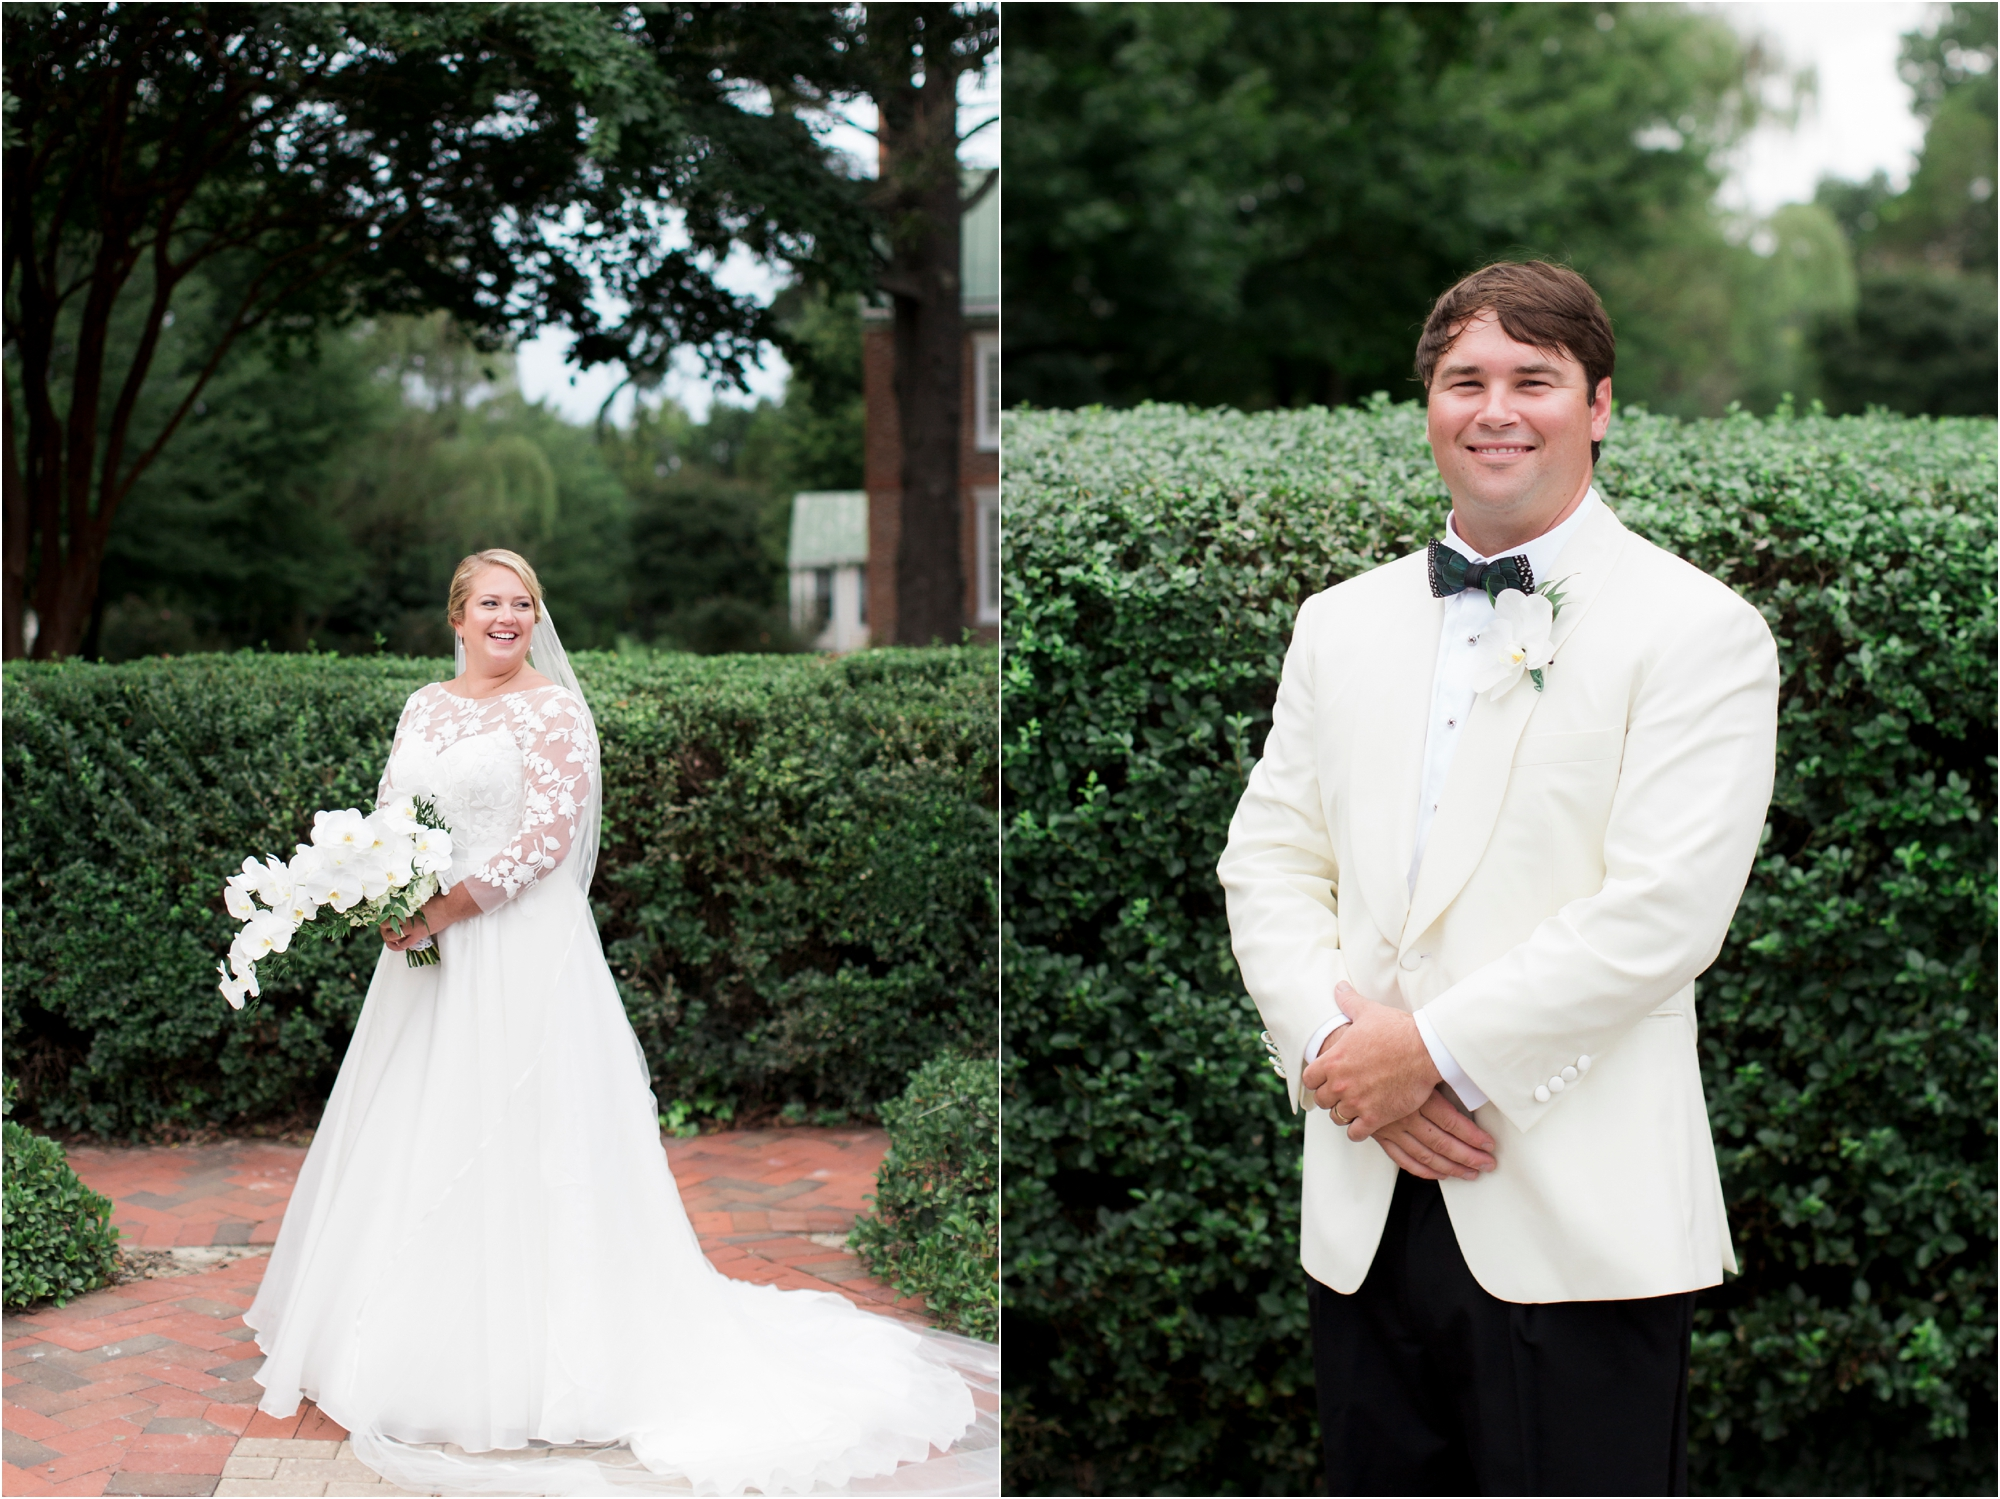 rachel-robert-chesapeake-inn-urbanna-virginia-wedding-photos_0020.jpg